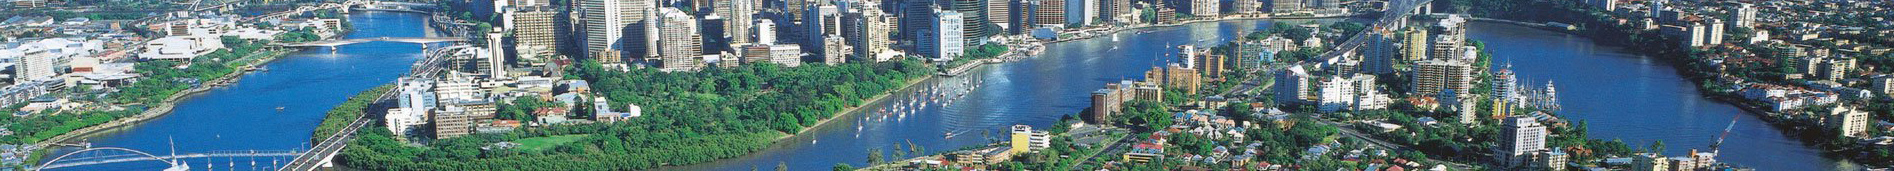 Guided Walking Tours in Brisbane - Walk Brisbane